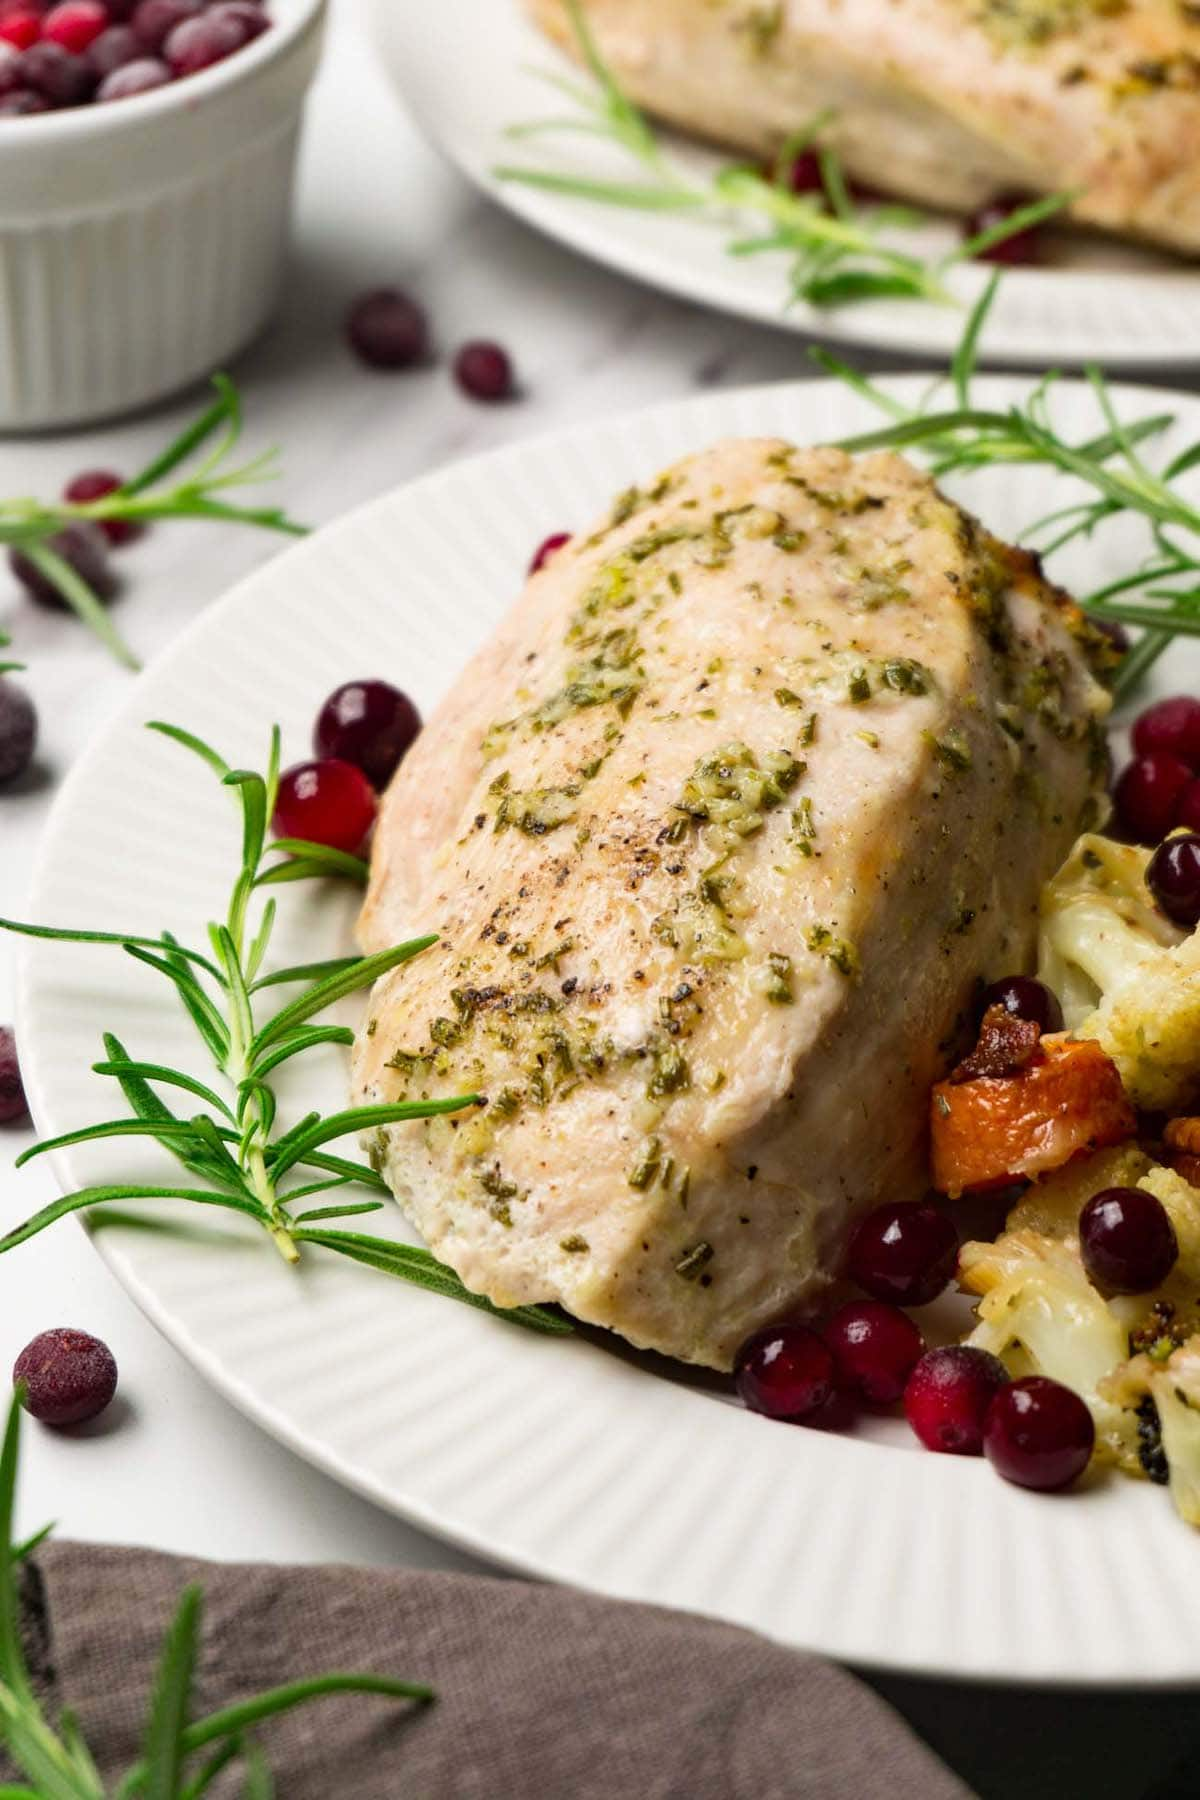 Close up shot of a roasted skinless boneless turkey breast served with stuffing and cranberries on the side.